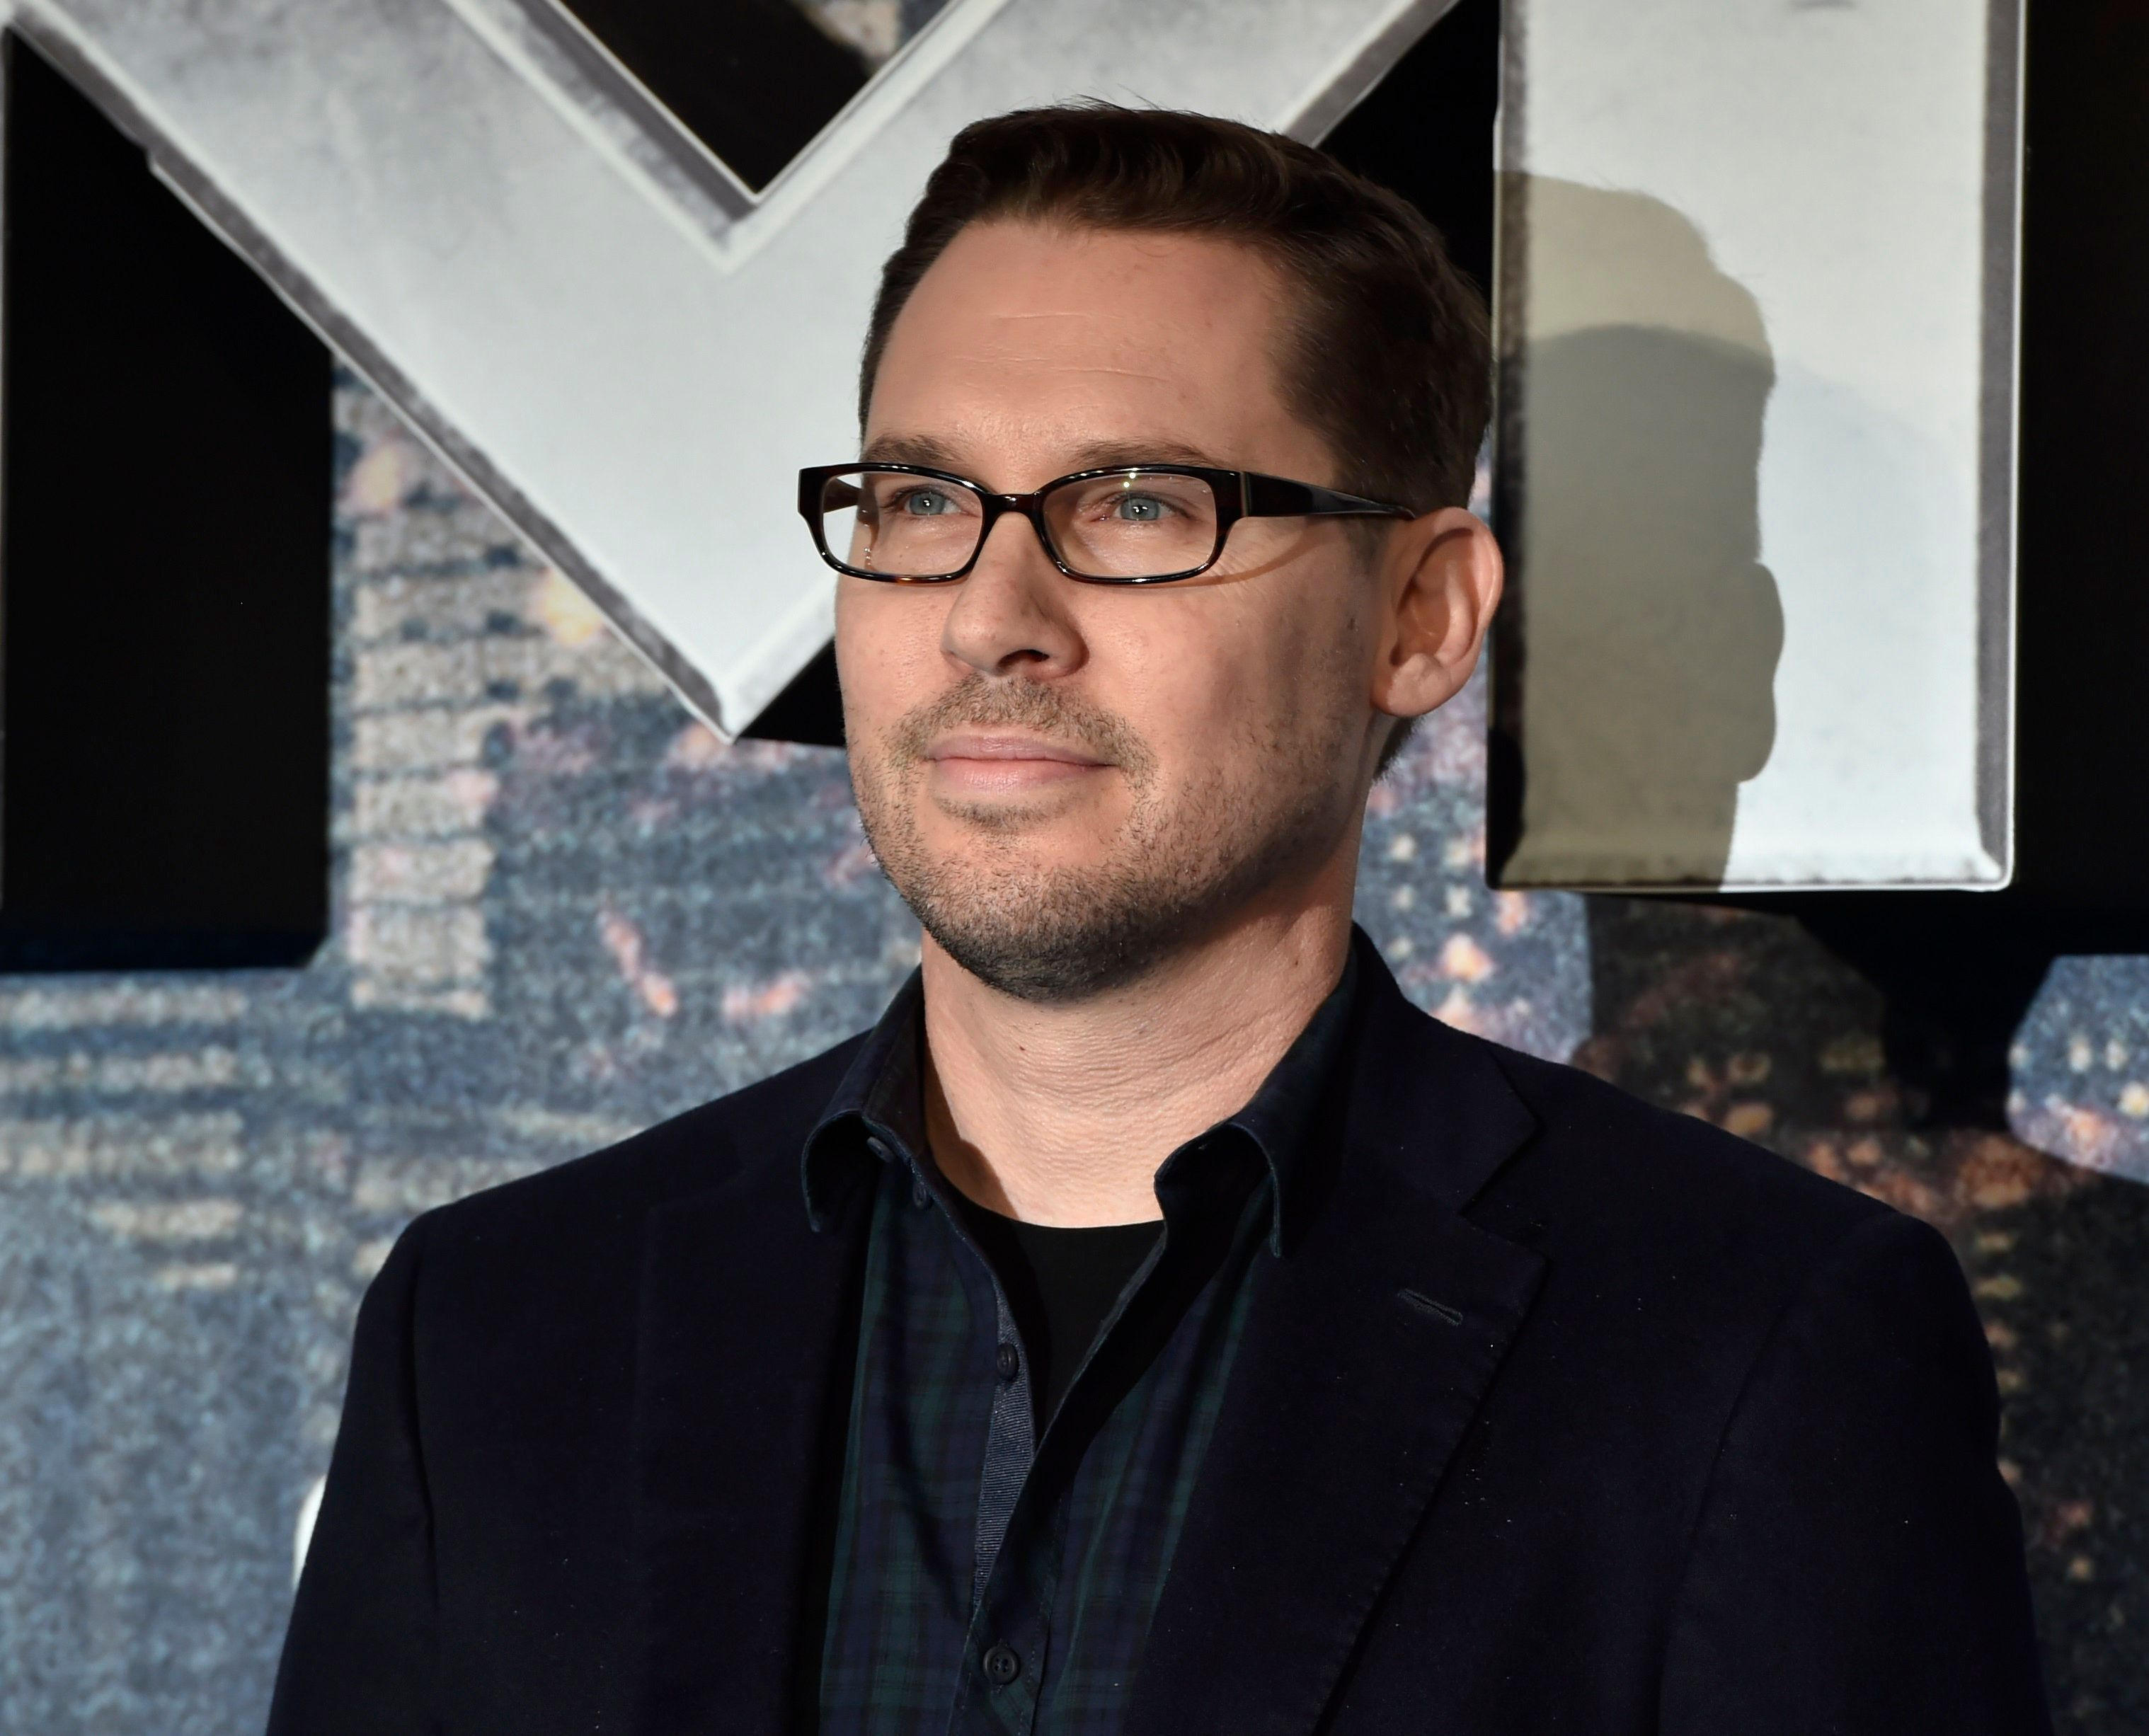 Bryan Singer's Accusers Speak Out: